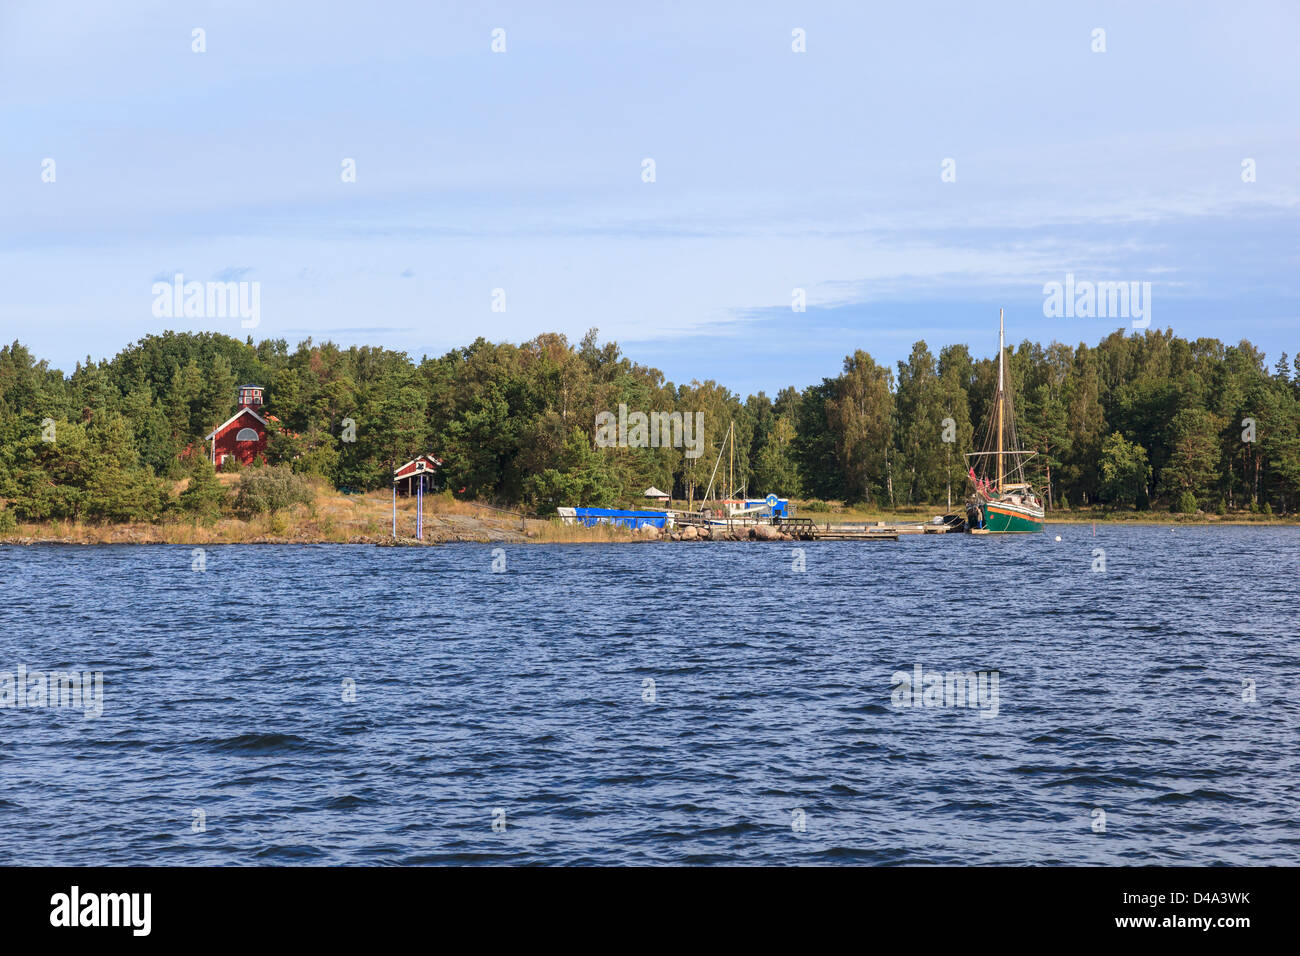 The harbor of Luro in Vanern - Stock Image